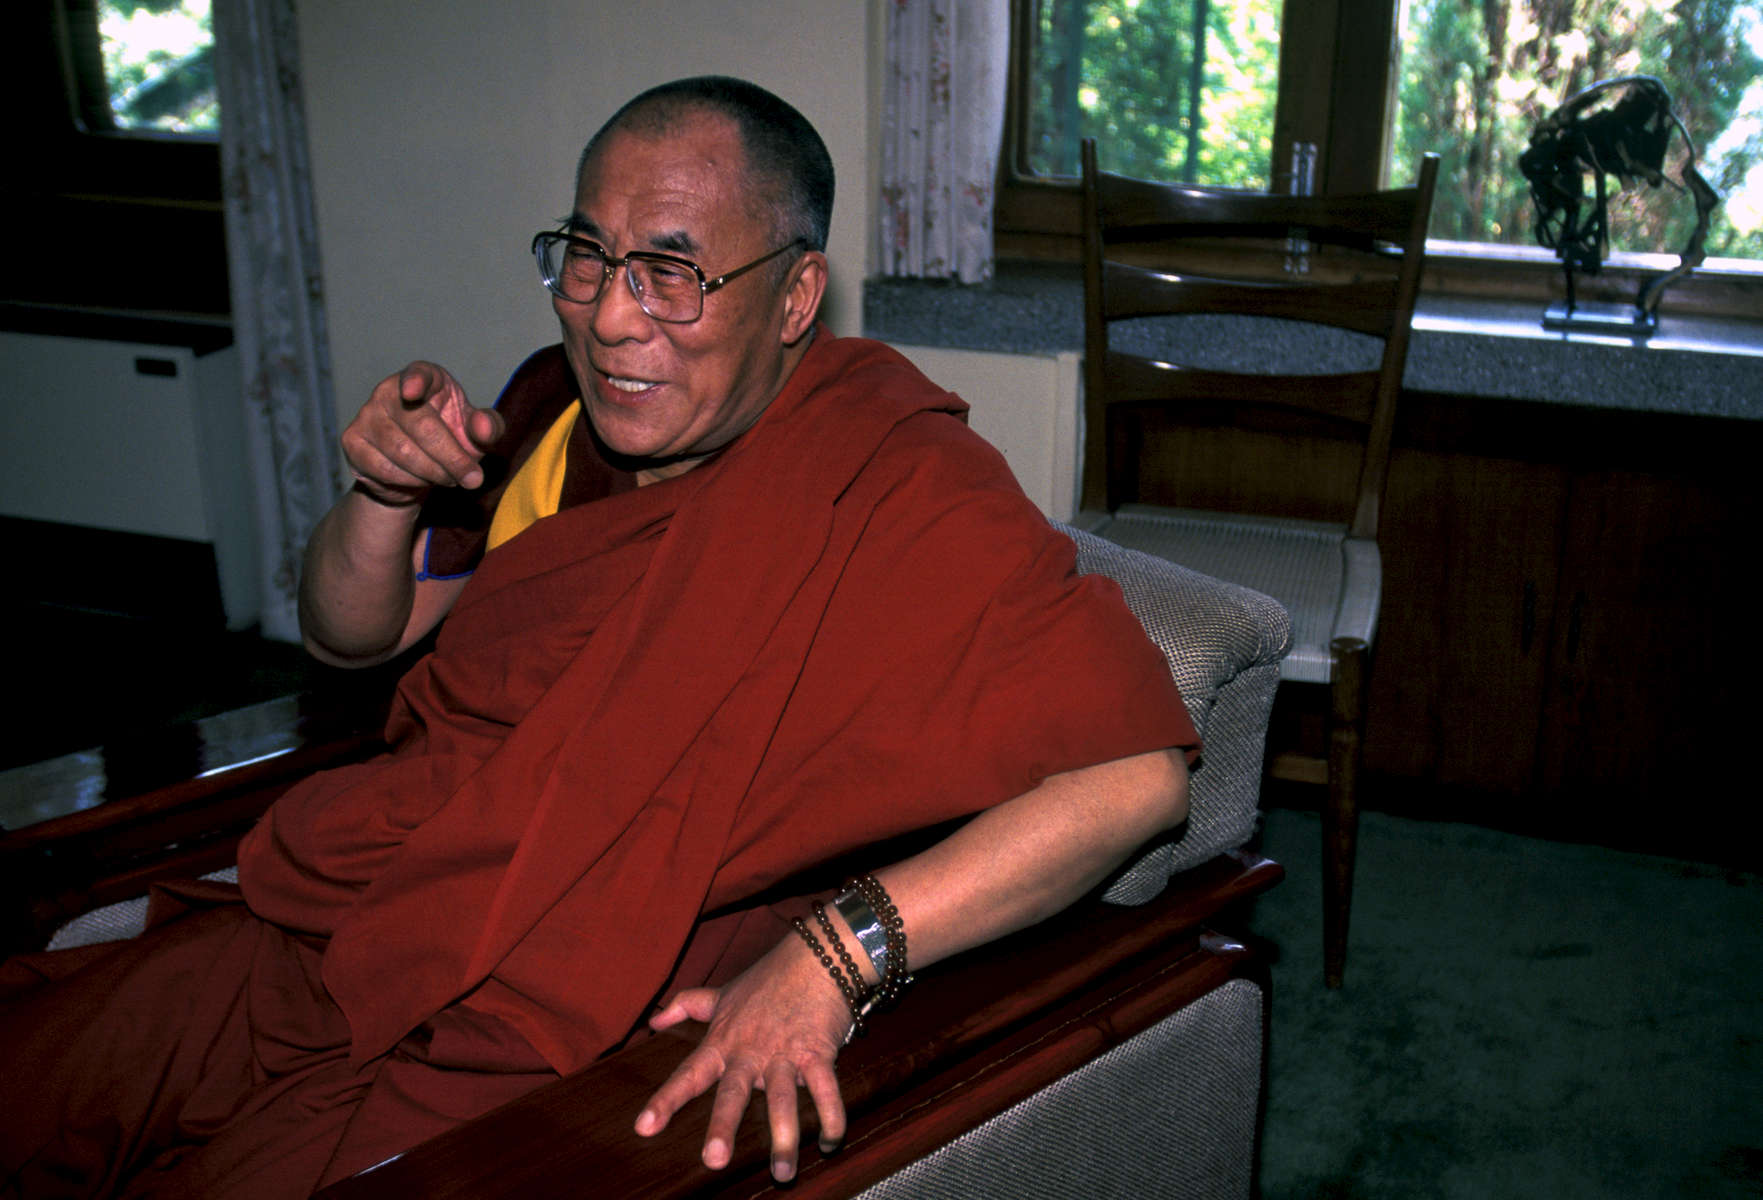 His Holiness, the Dalai Lama, in his exiled office at Mecleod Ganj, India 1998